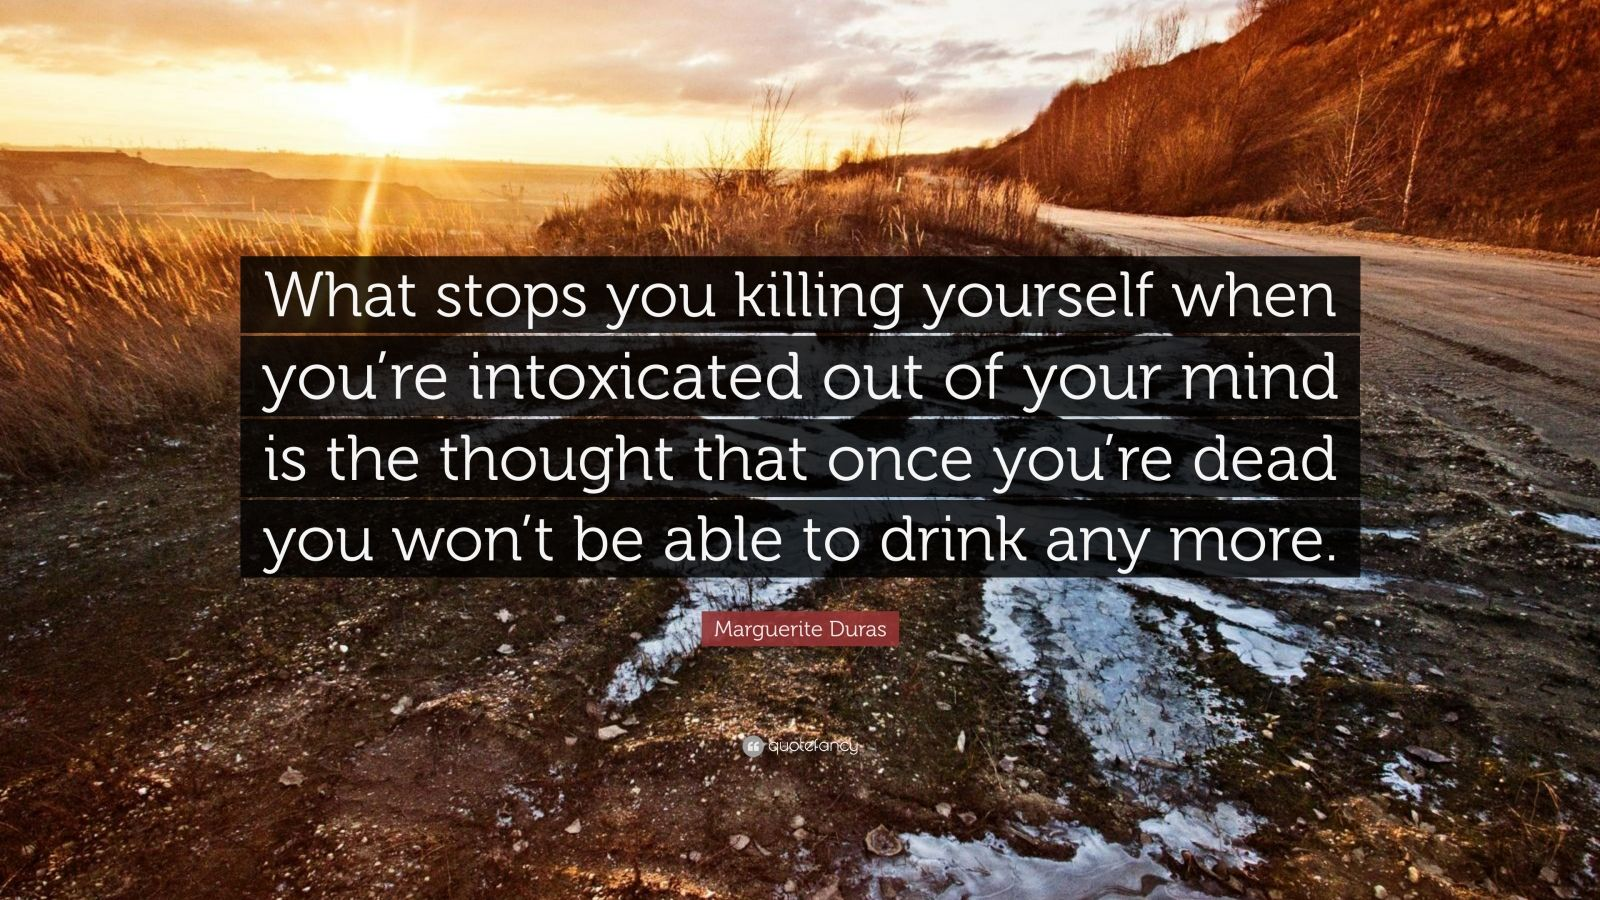 "Marguerite Duras Quote: ""What stops you killing yourself when you're intoxicated out of your mind is the thought that once you're dead you won't be able to drink any more."""